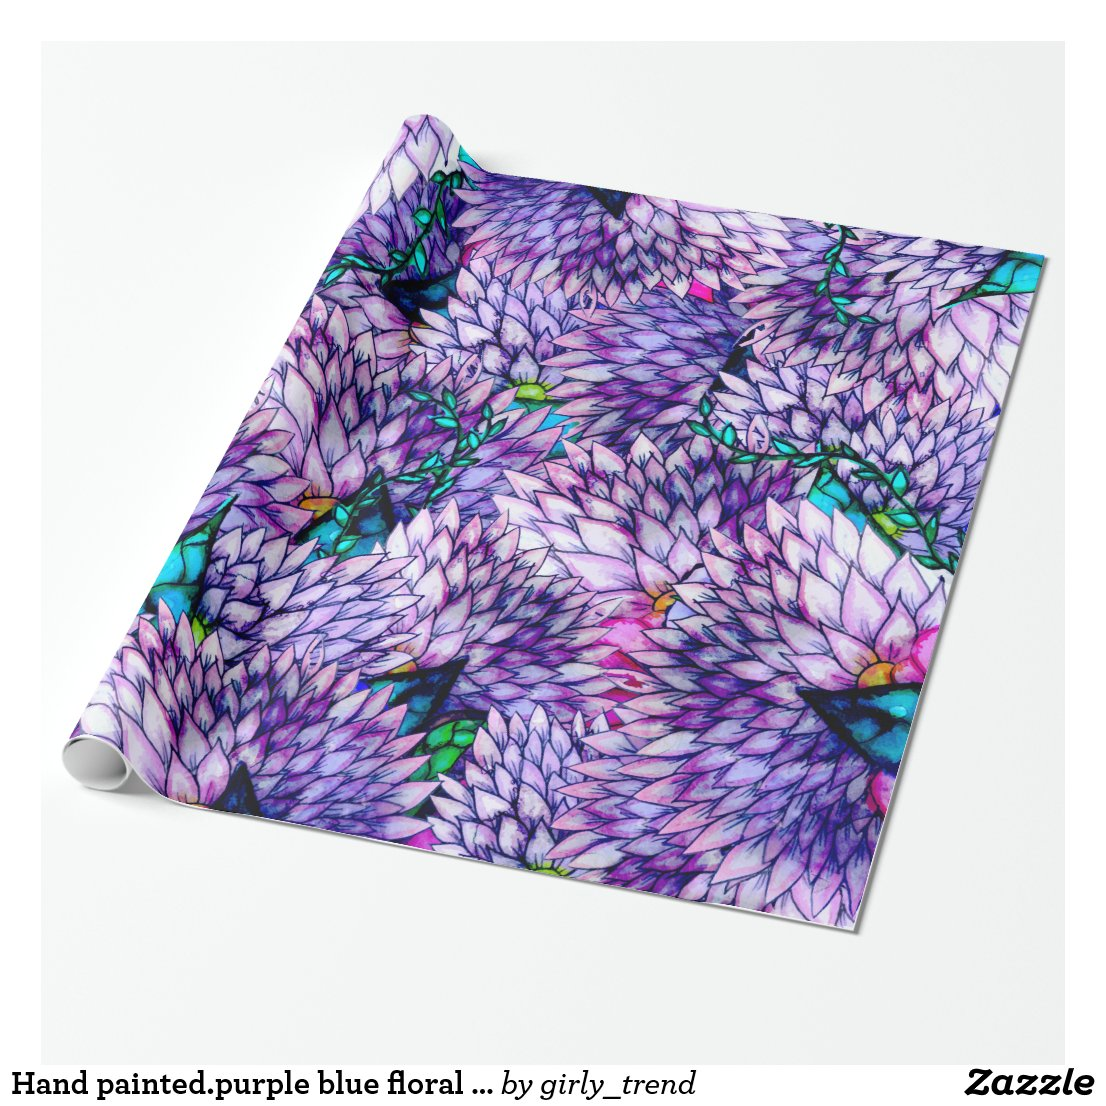 Hand painted.purple blue floral watercolor pattern wrapping paper